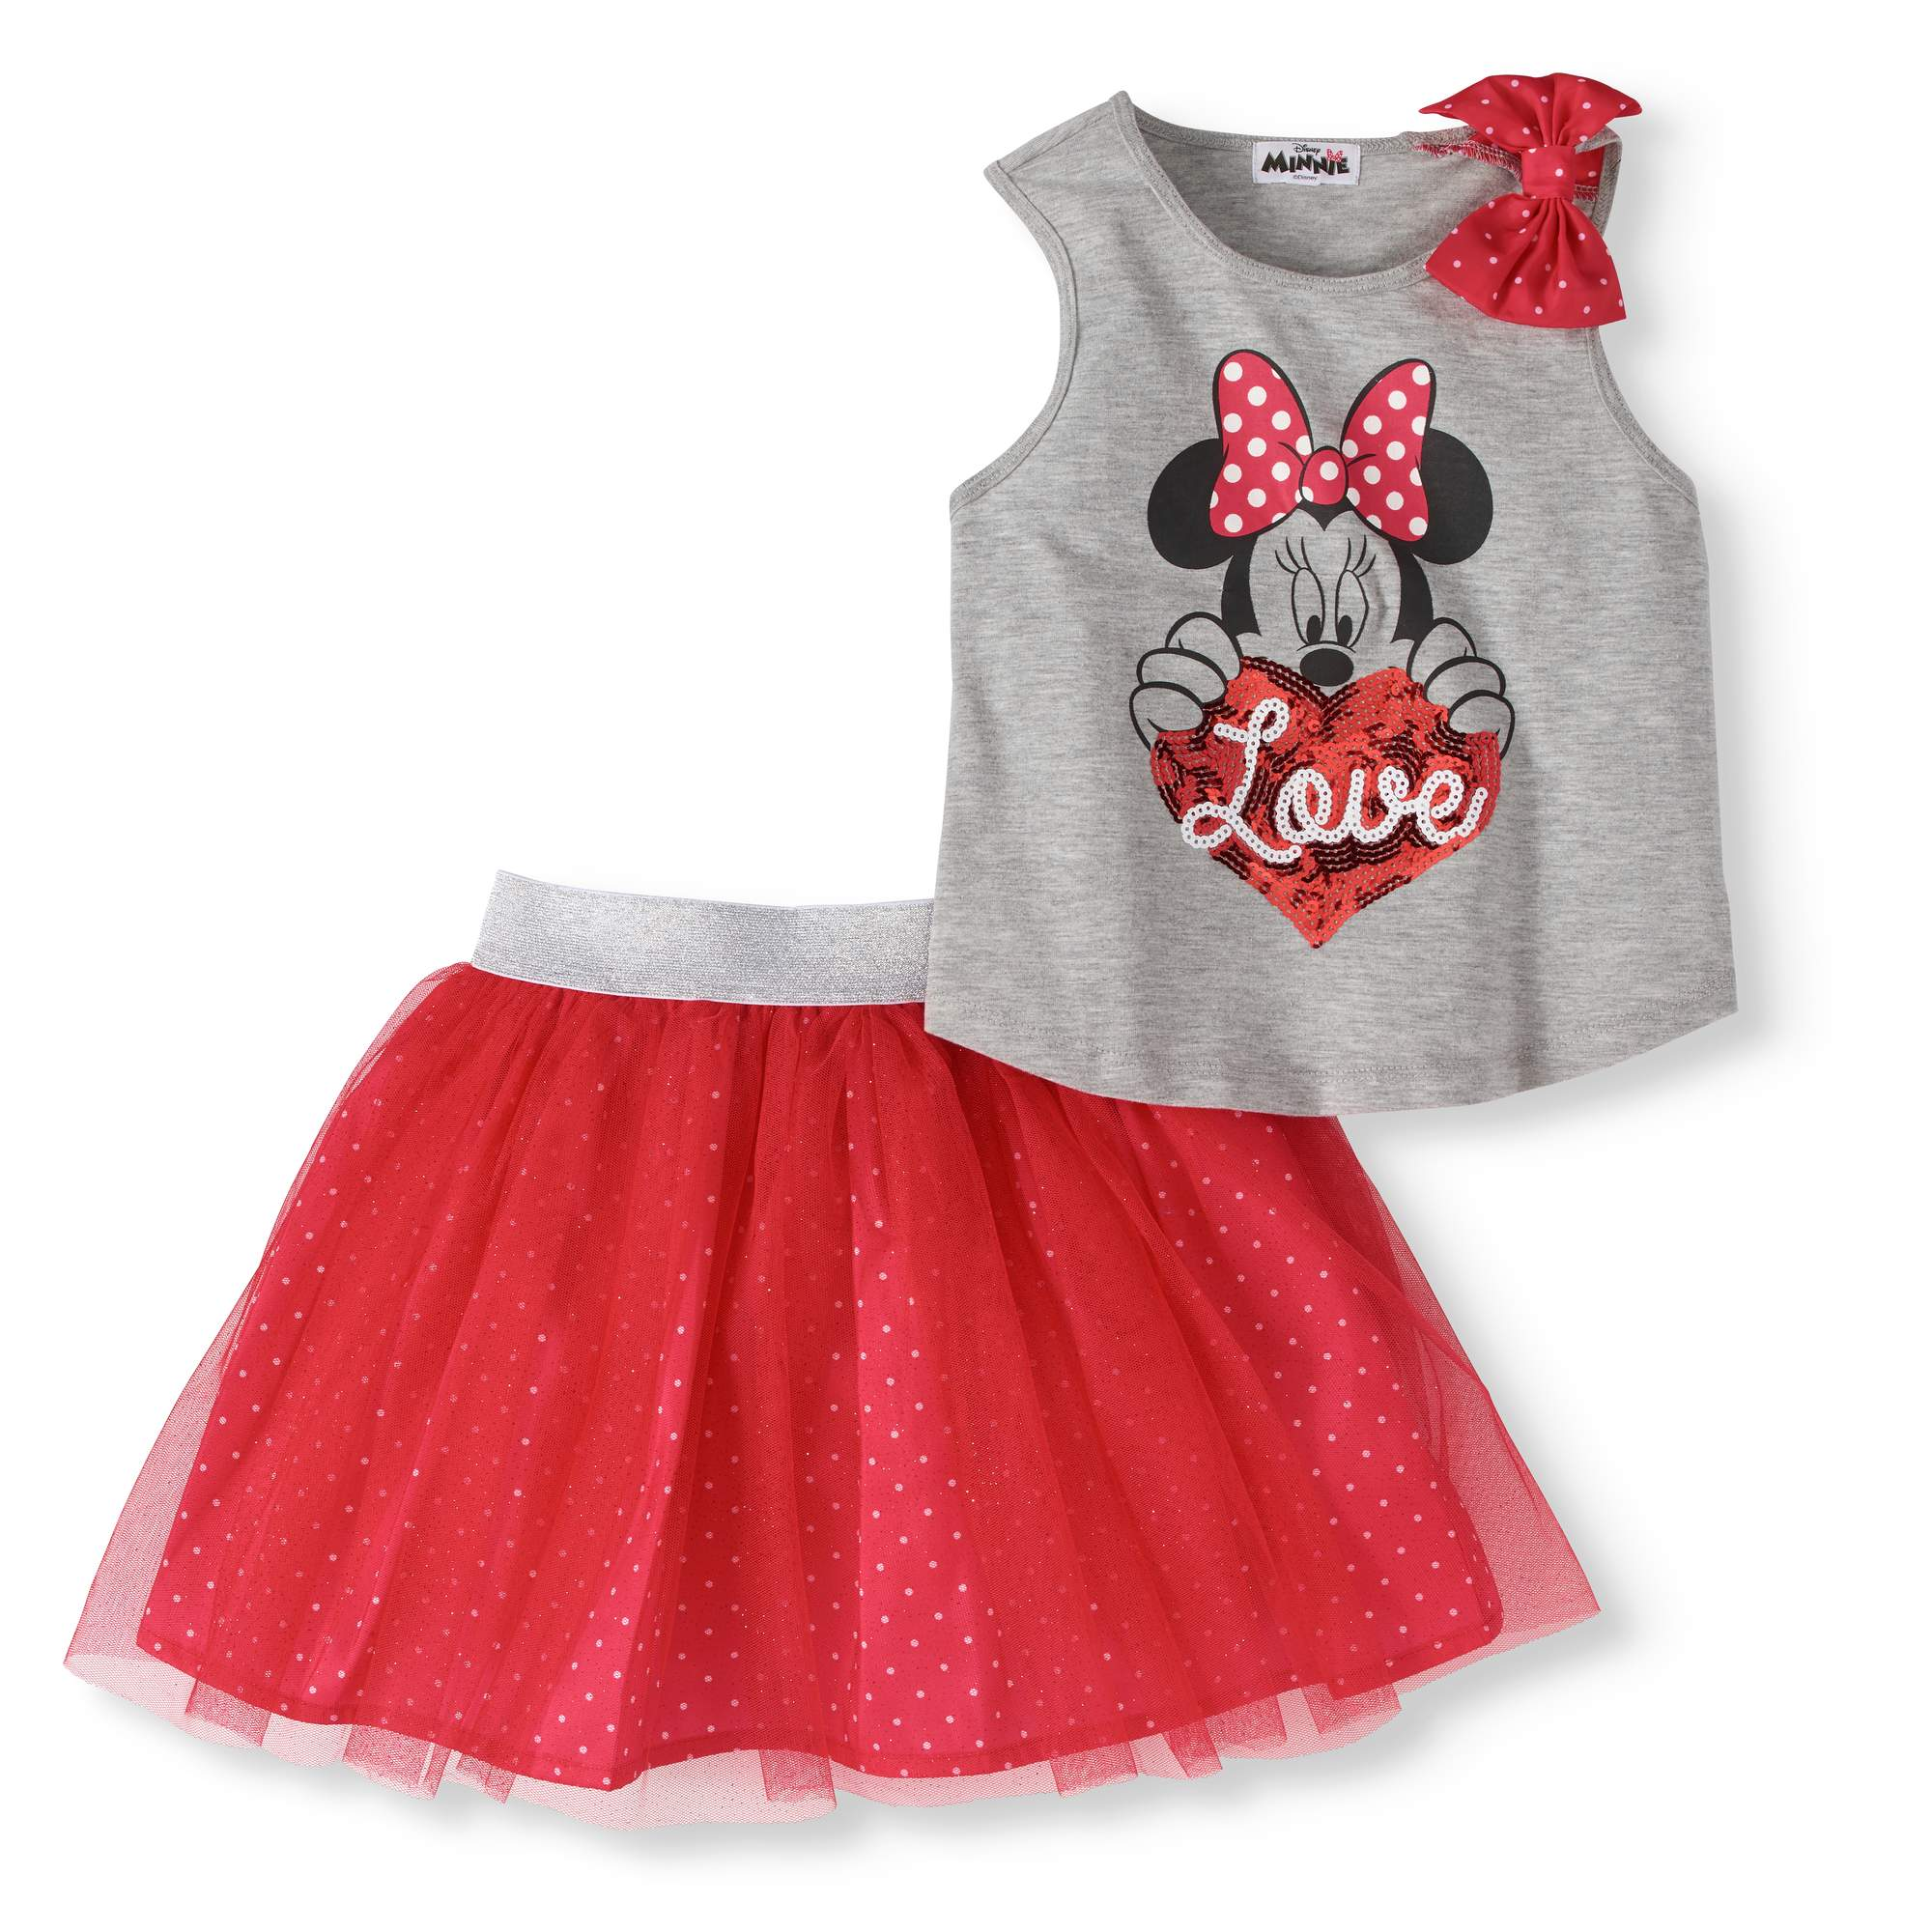 Girls' Bow Tank Top and Scooter Skirt 2-Piece Outfit Set